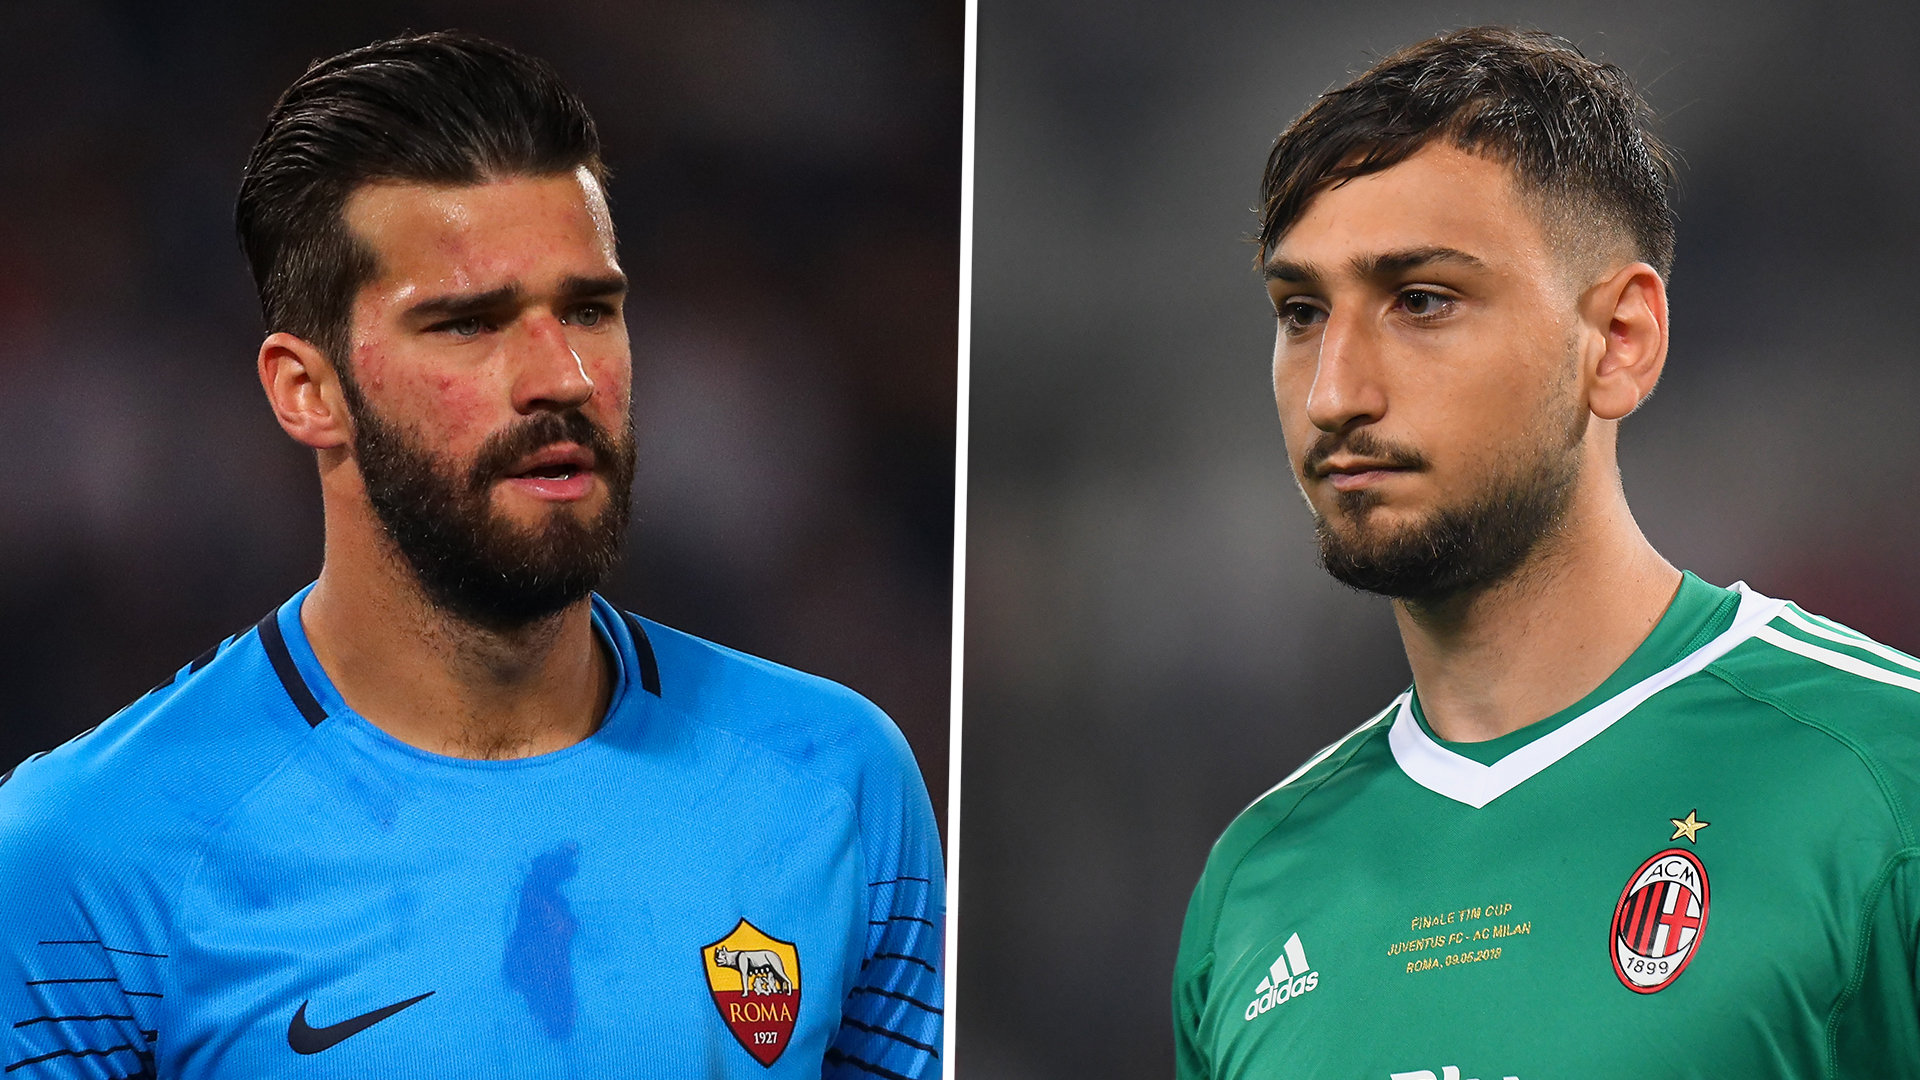 Liverpool deny making 70m euro bid for Roma goalkeeper Alisson Becker